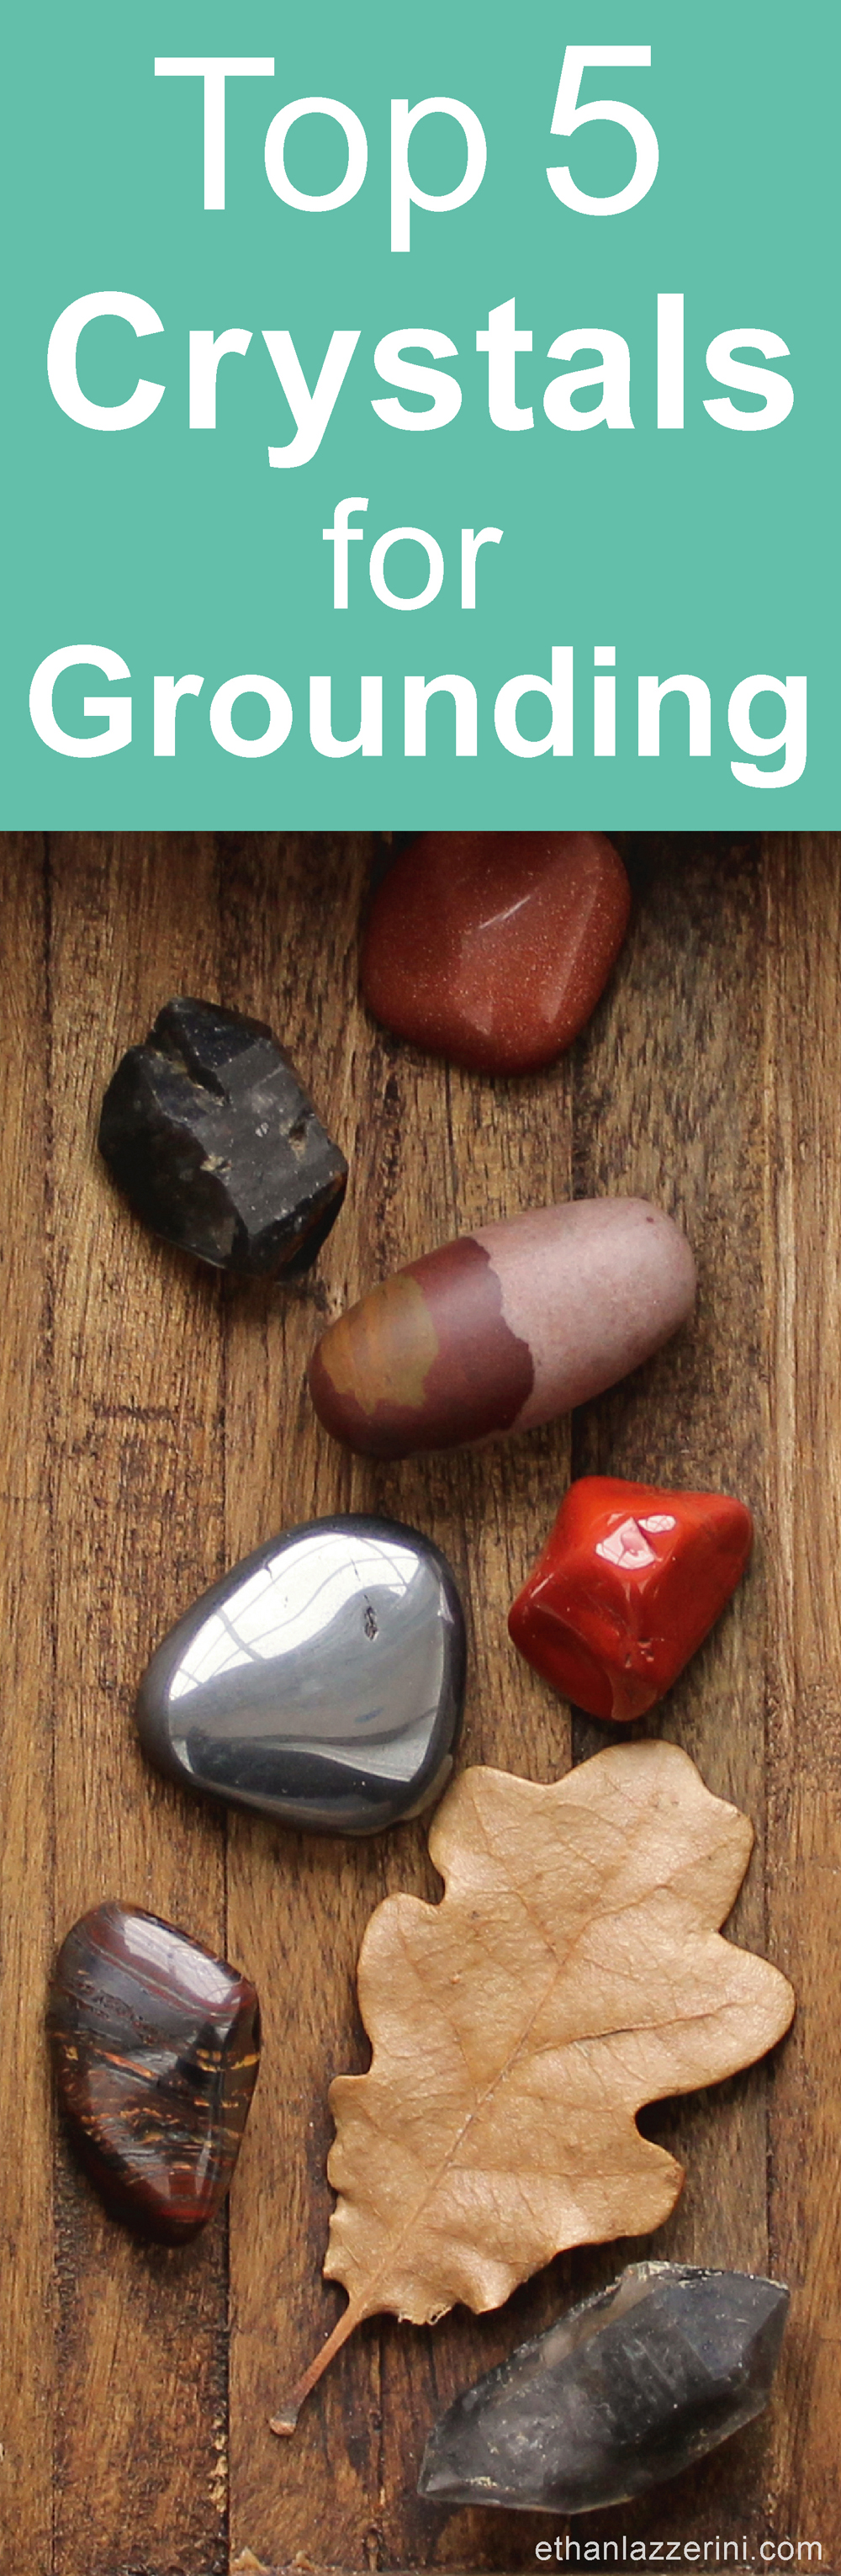 Crystals for grounding - Top 5 crystals plus grounding meditation